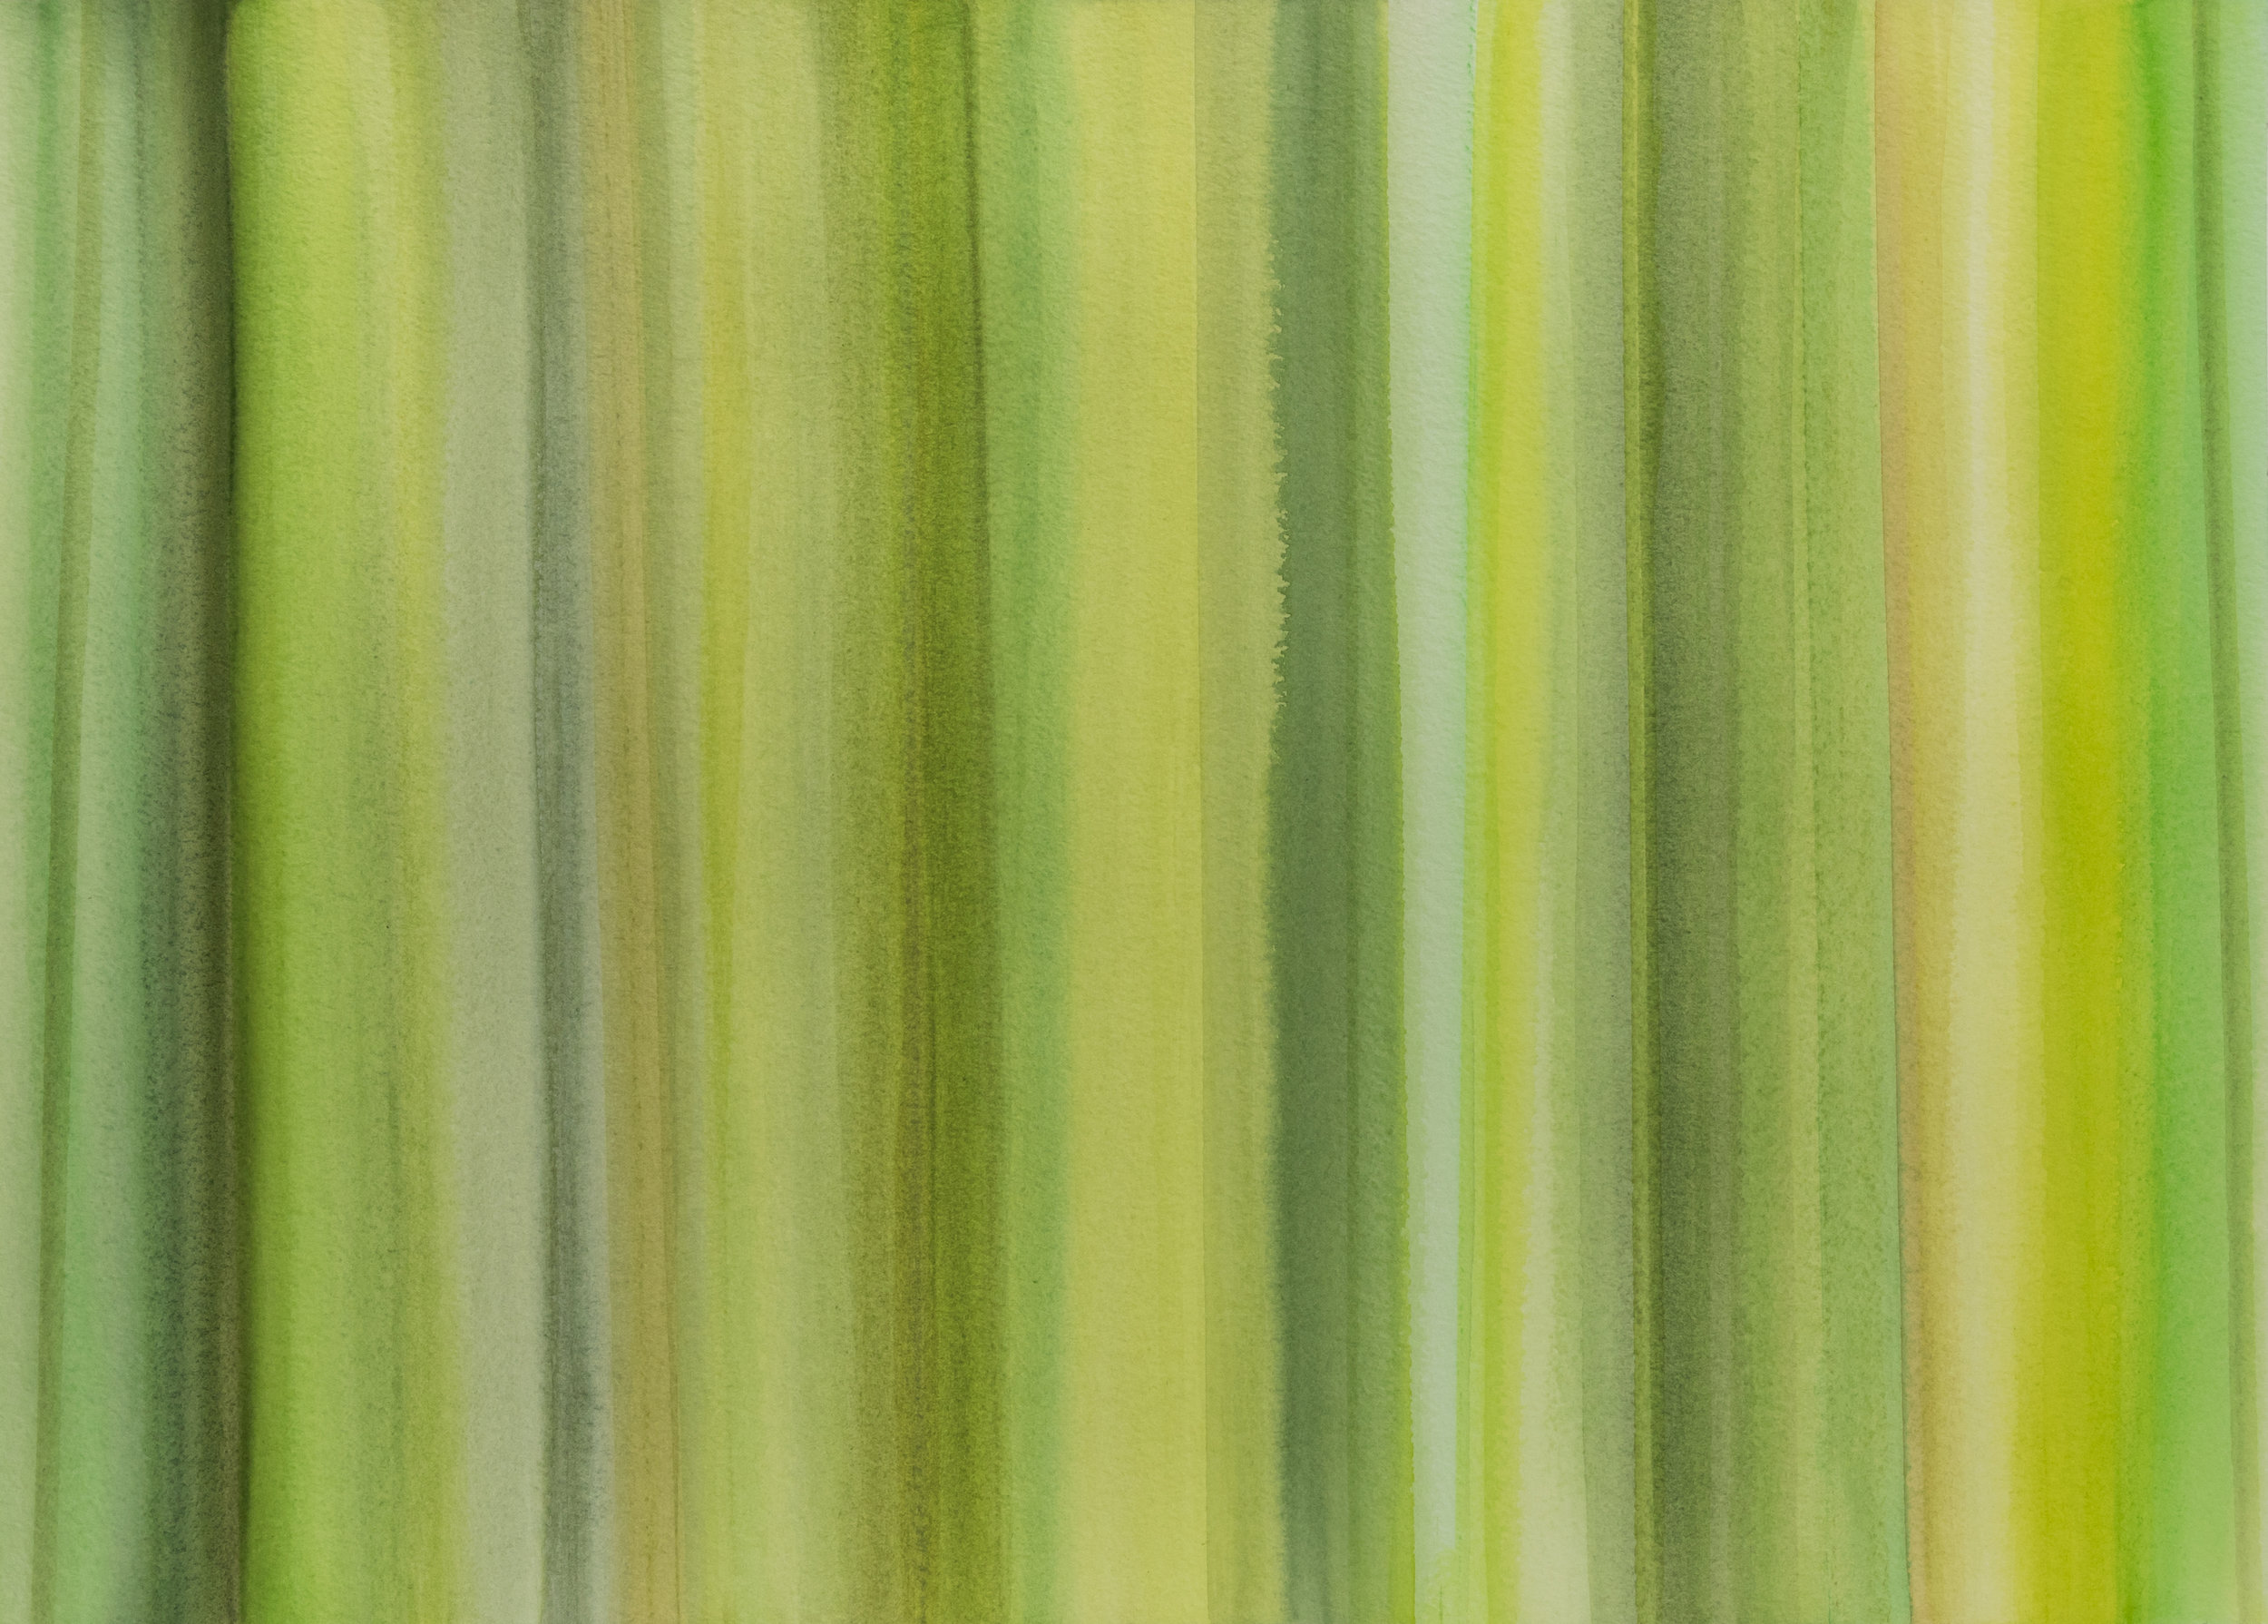 Green Lines I, 2017, watercolor on paper, 22 x 30 in, $3,000